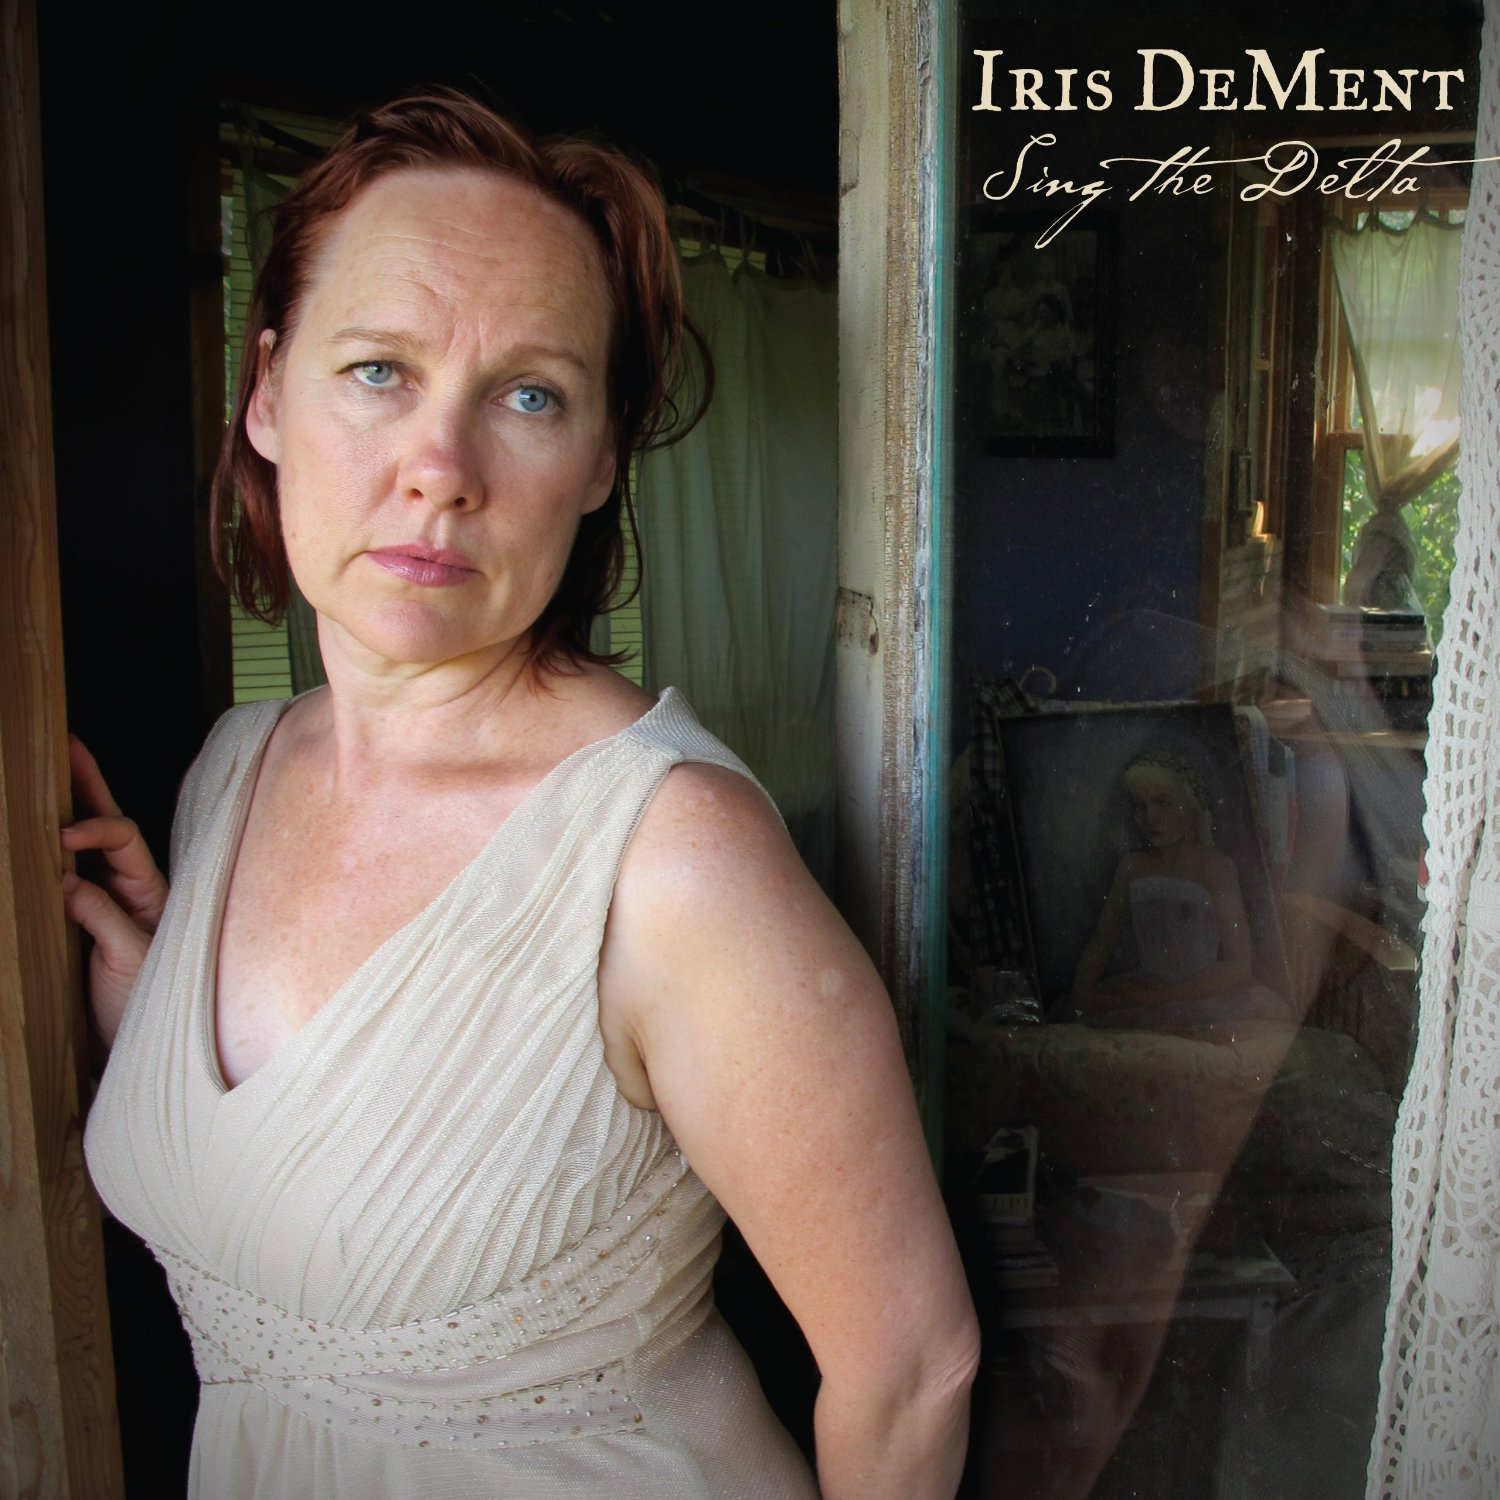 FTB Show #183 featuring Iris DeMent with Uncle Lucius, Jimmy LaFave, Gordie Tentrees and more...